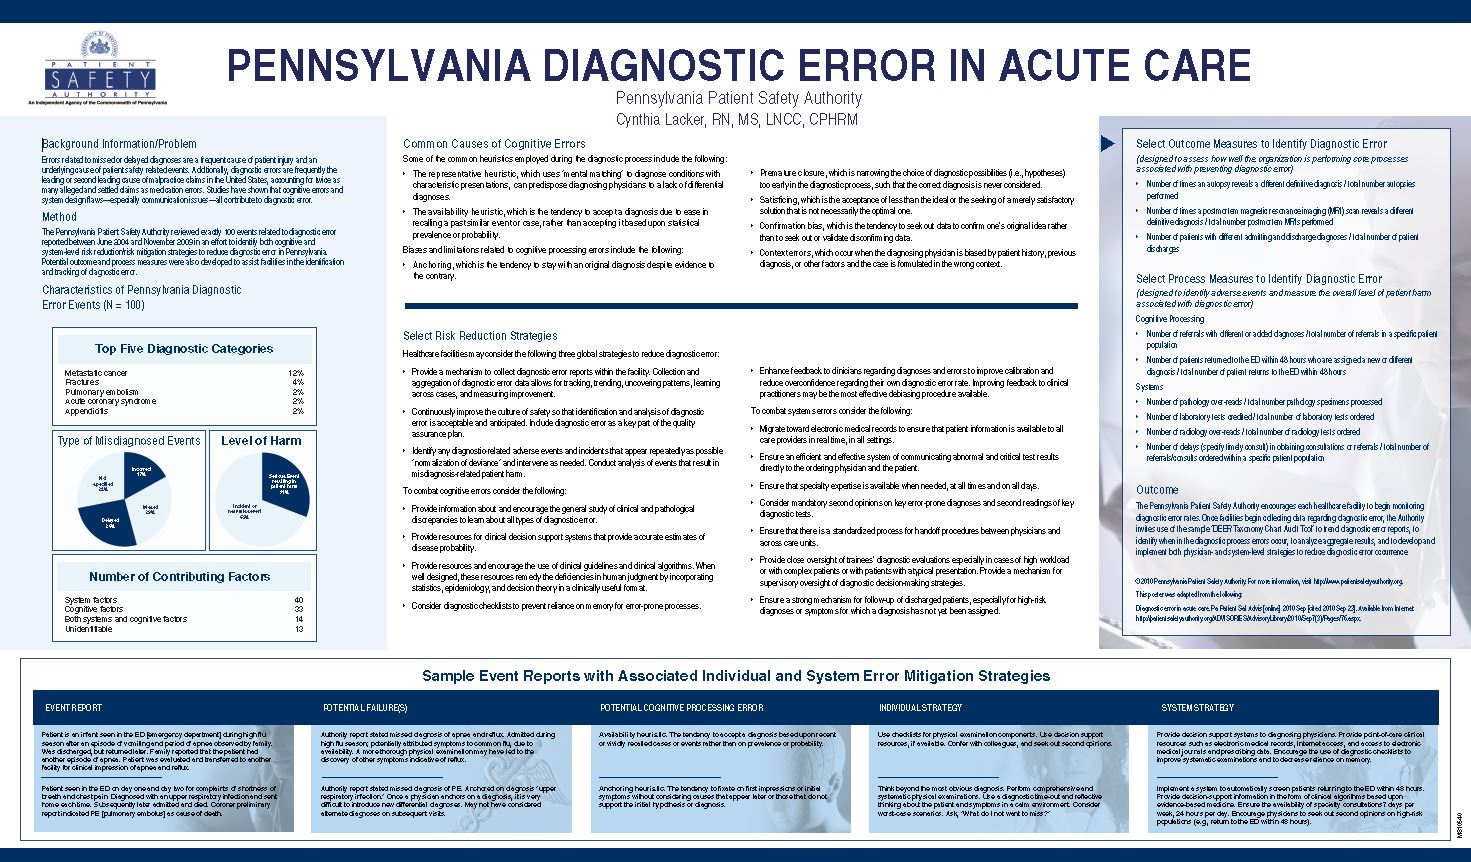 Pennsylvania Diagnostic Error in Acute Care